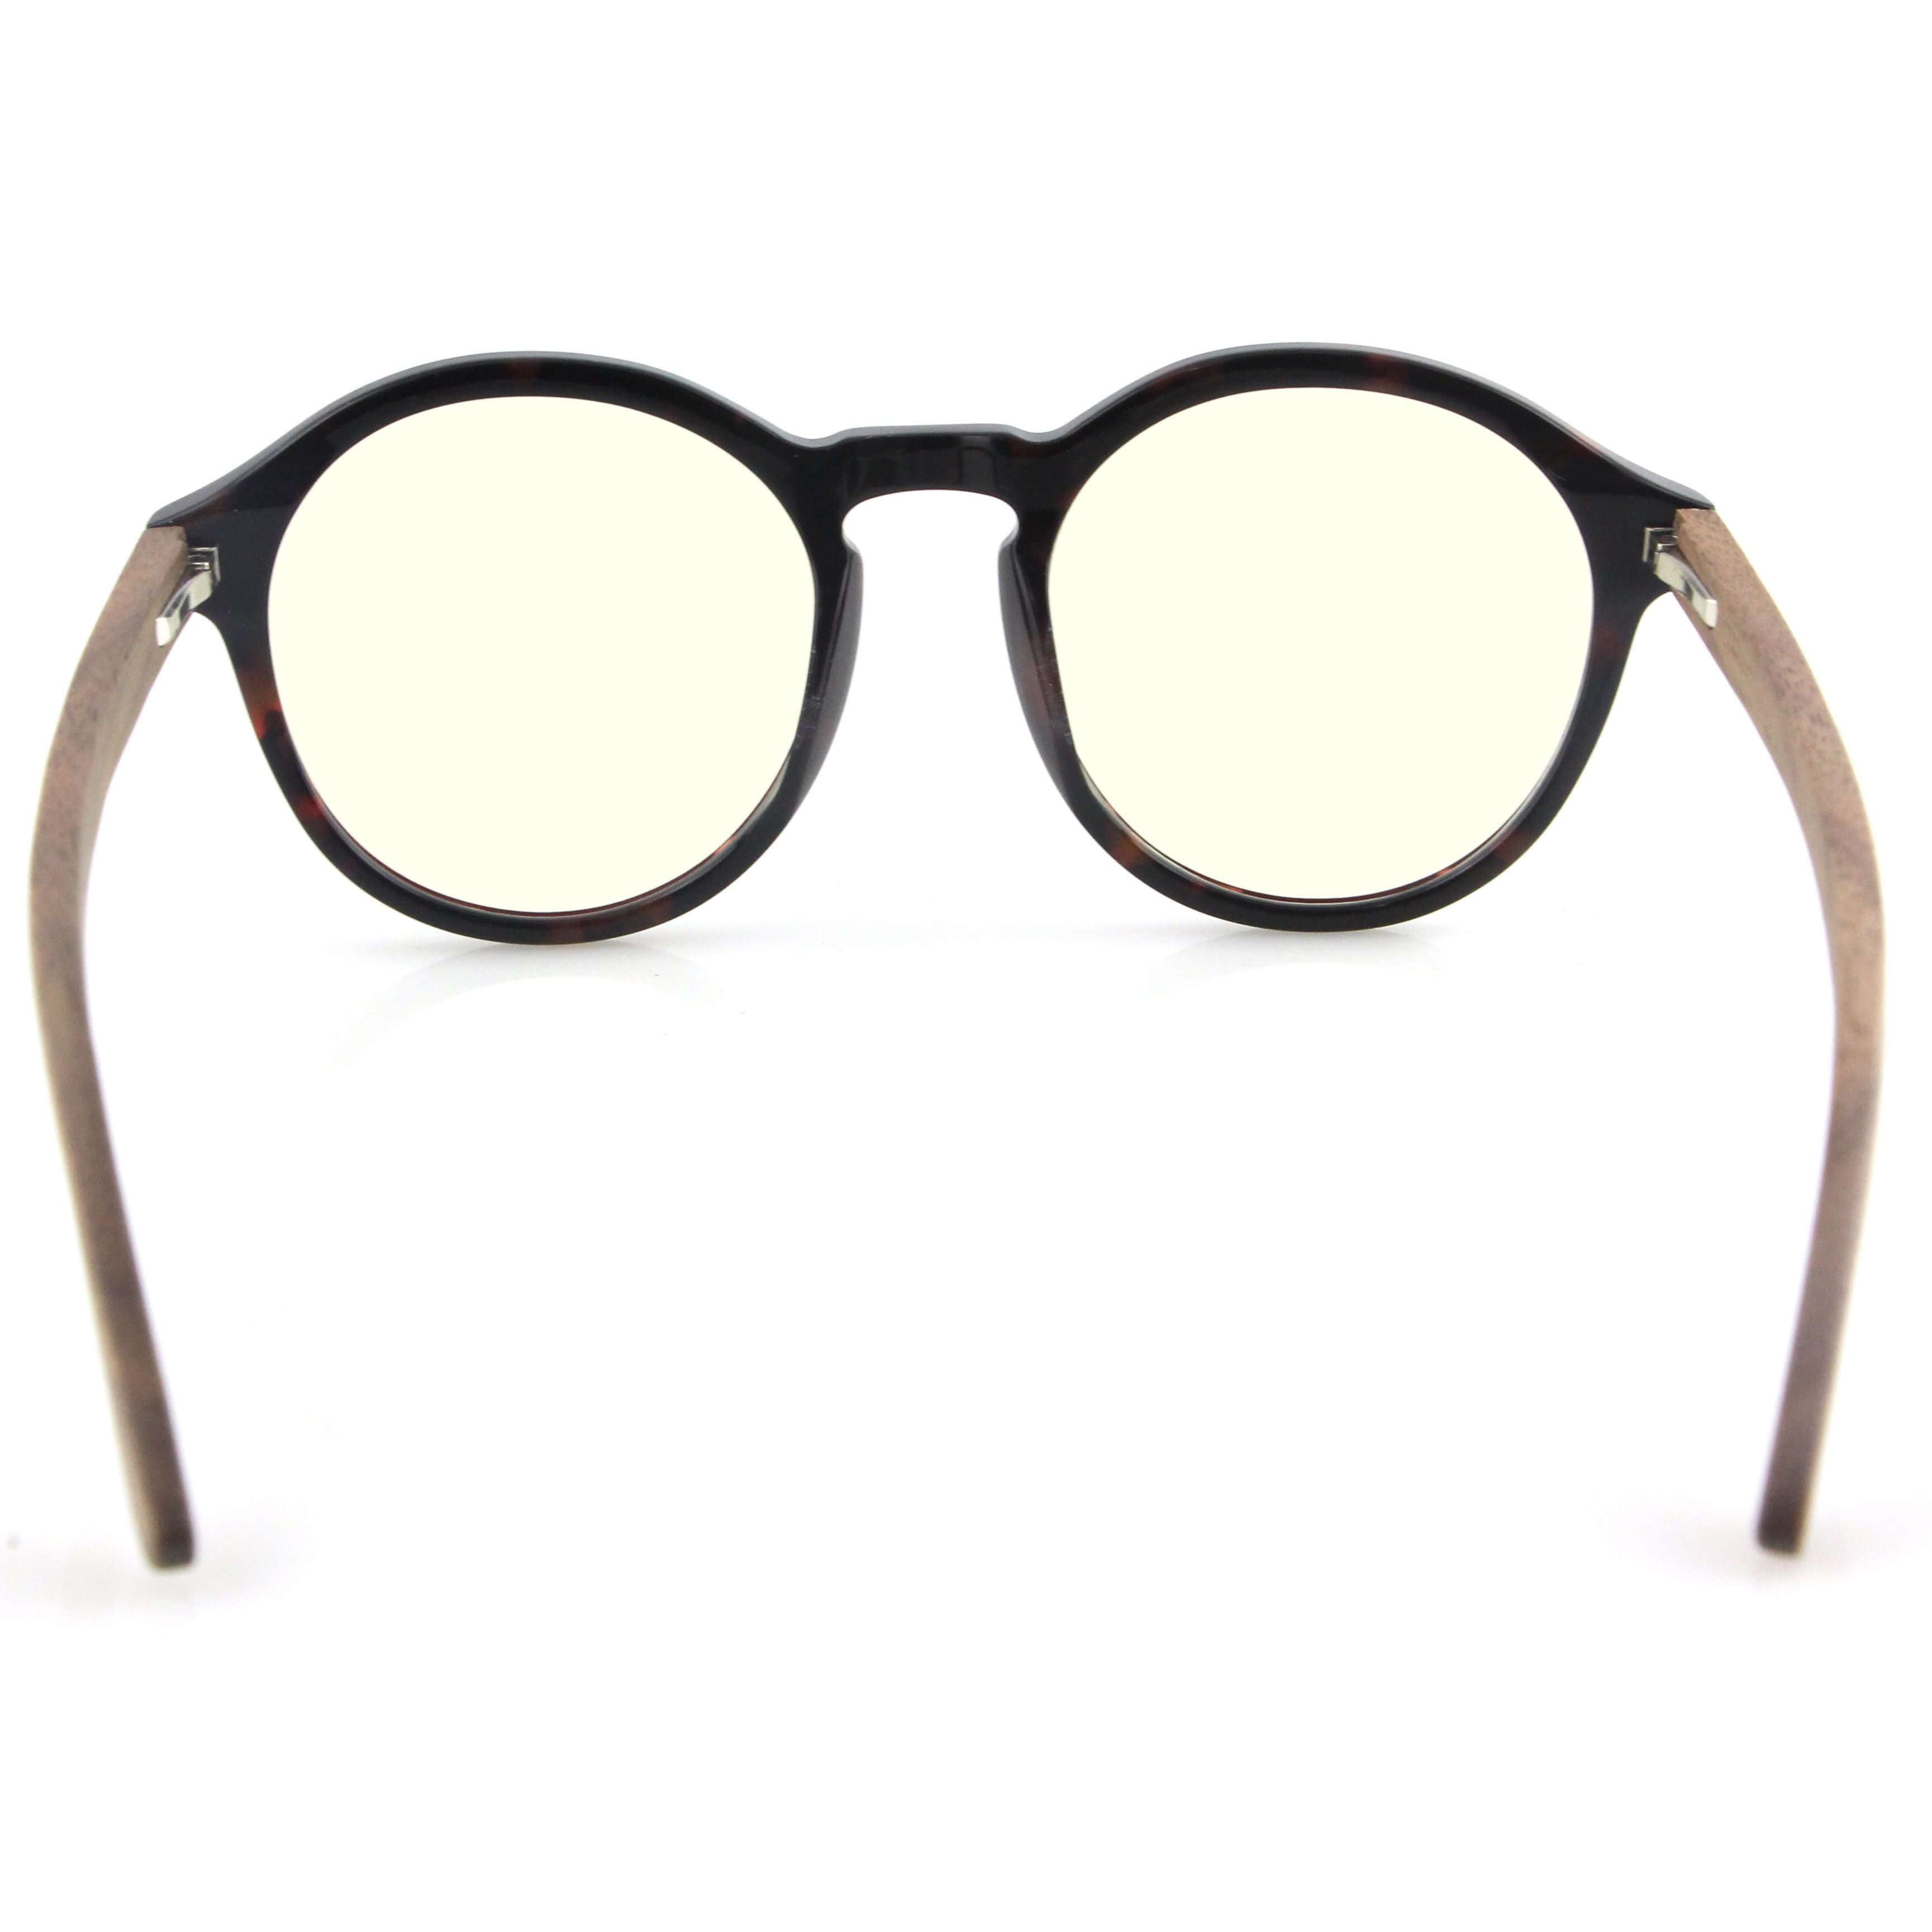 Vilo Dickens - Wooden Blue Light Glasses: